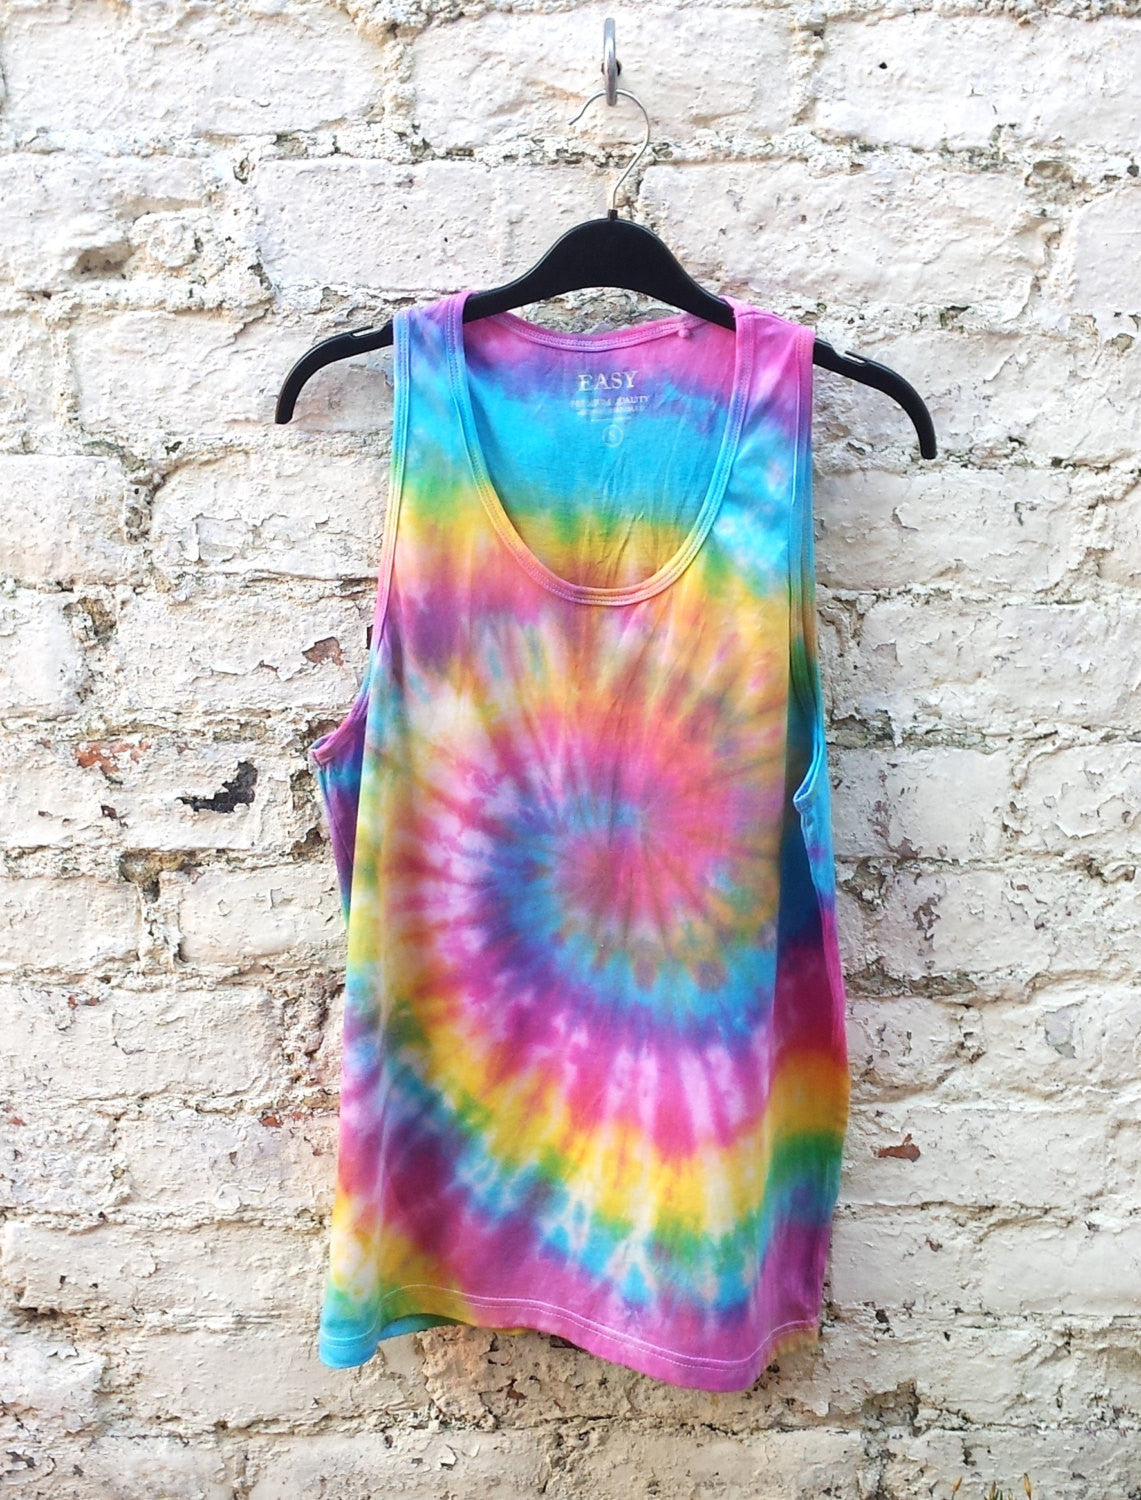 Rainbow Tank Tie Dye Mens Tank Top Rainbow Spiral Tie Dye ALL SIZES Hippie Boho Festival Mens Tanks Summer Tops Yoga Men Beach Gym Tanks